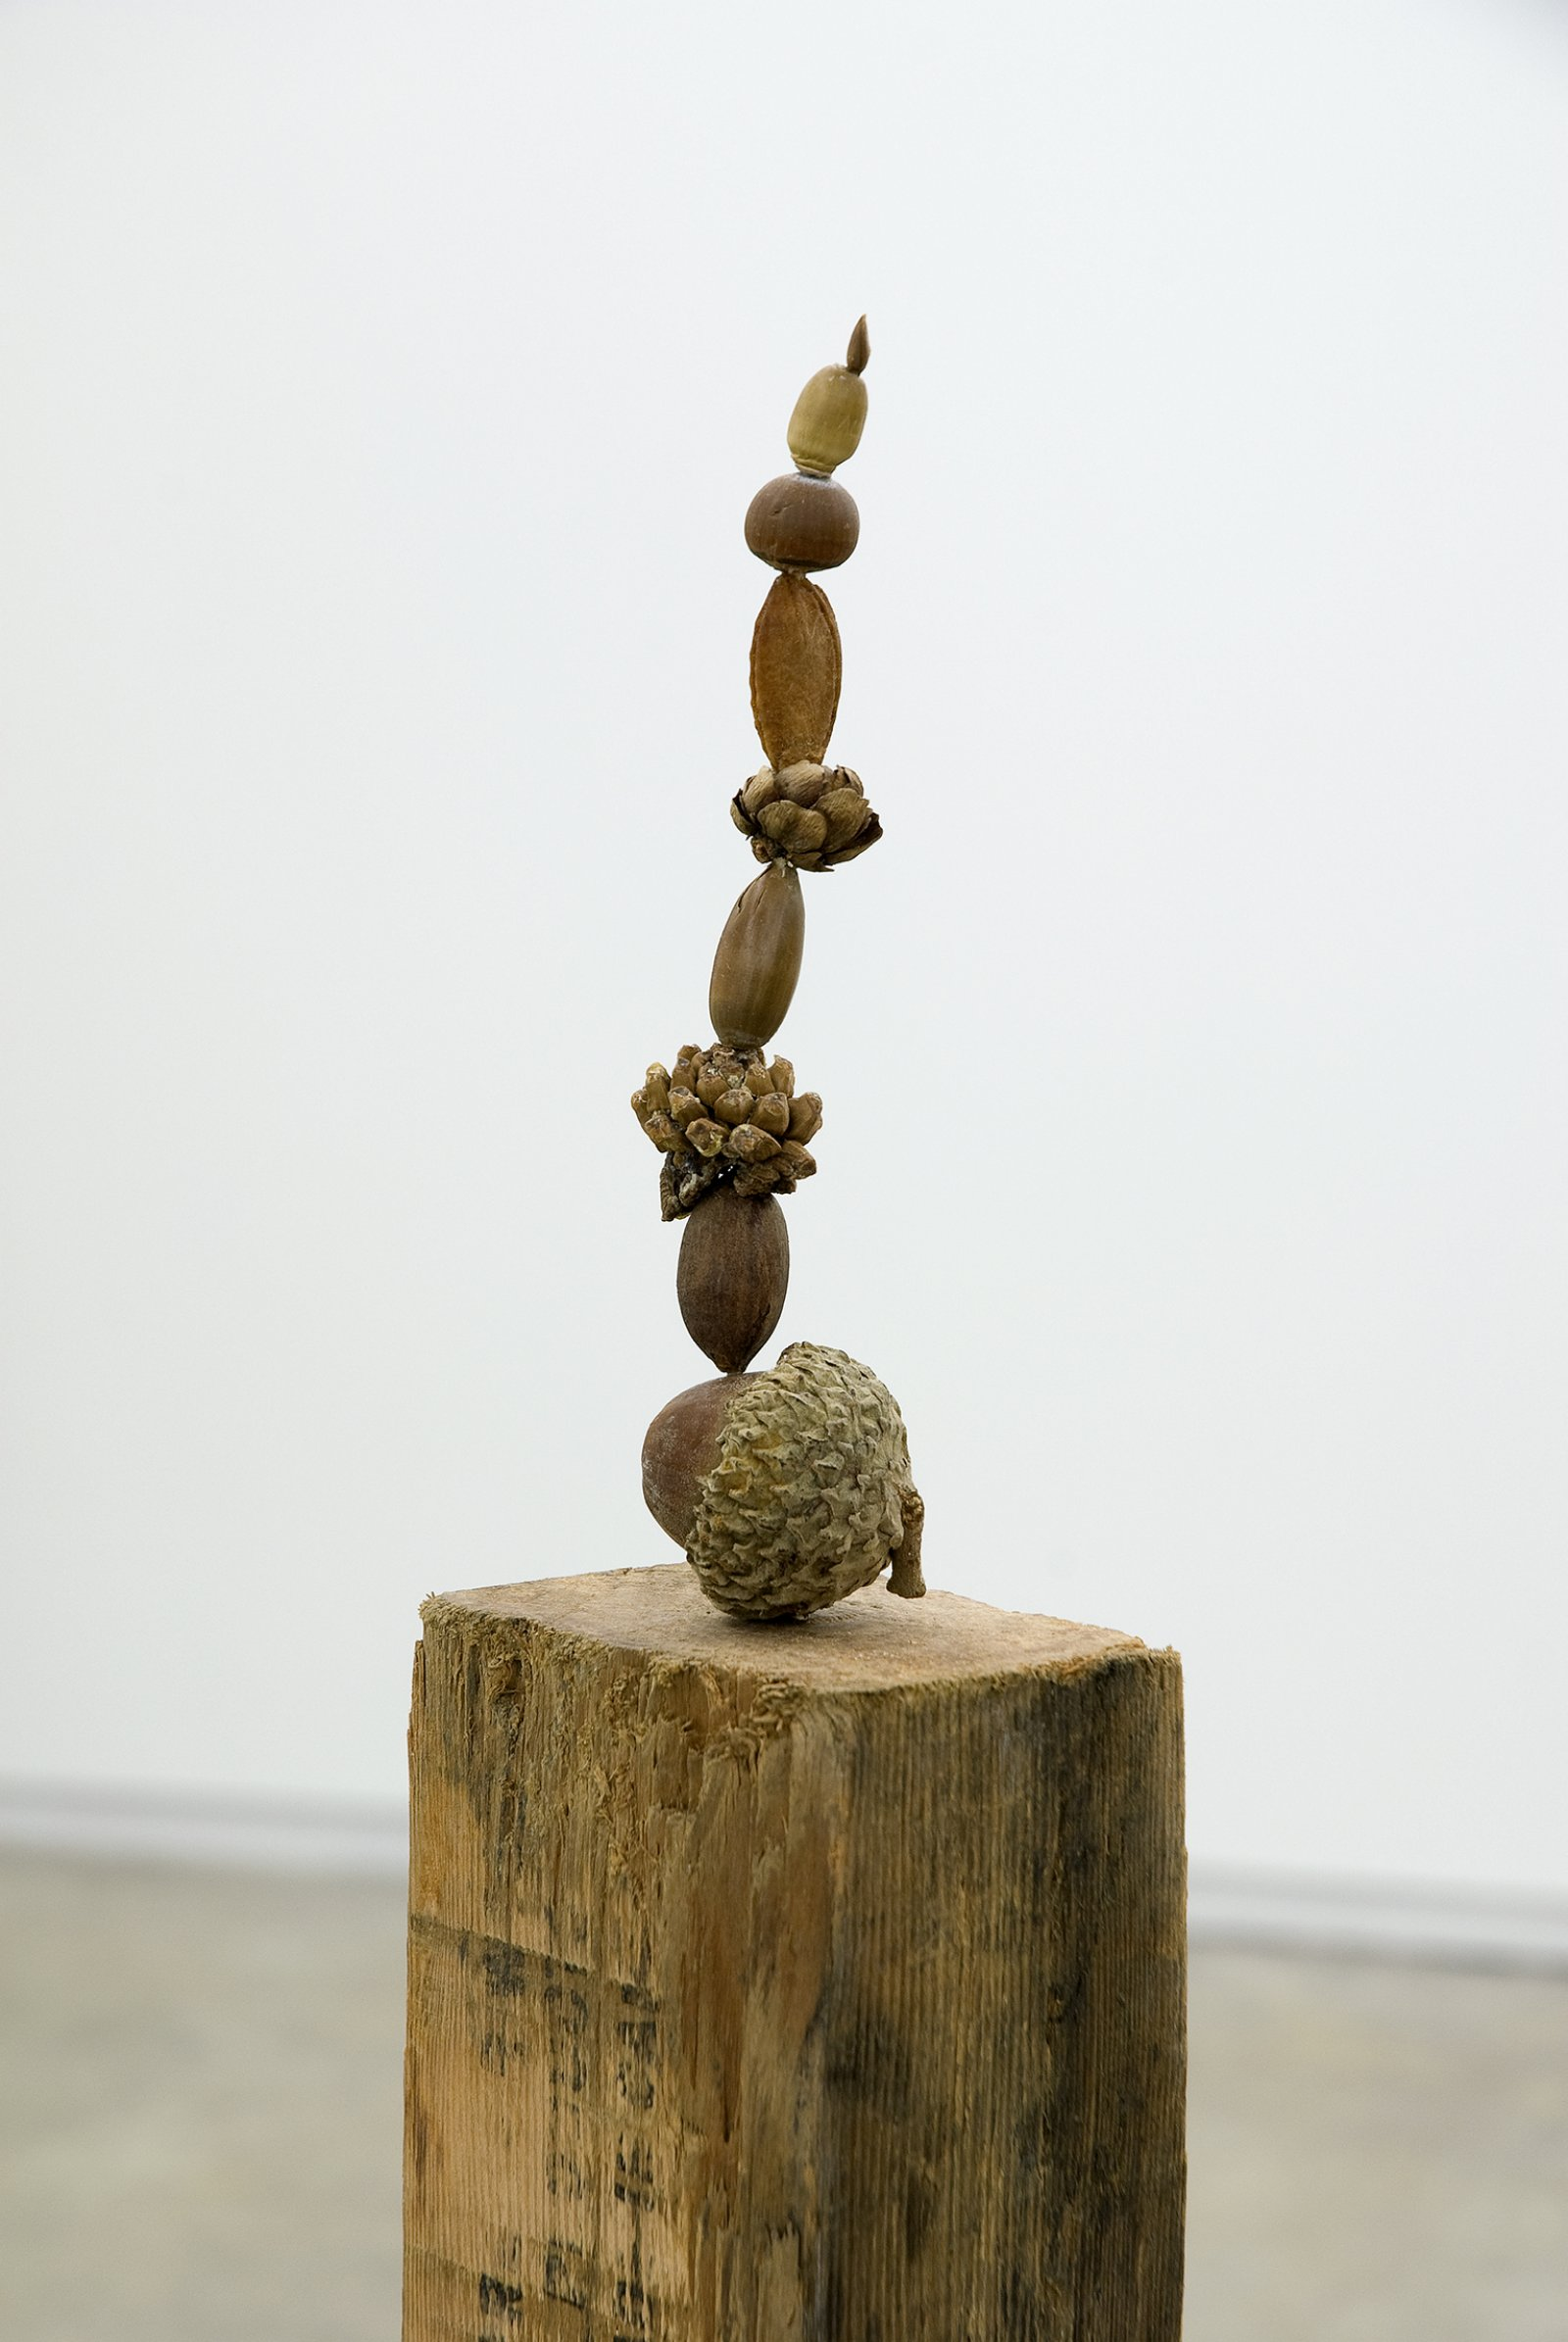 Gareth Moore, Judd also planted these trees from Uncertain Pilgrimage (detail), 2006-2009, nectarine pit, apple seed, Rothko pecan, Judd cone, unidentified seeds and nuts, found wood, 47 x 4 x 3 in. (118 x 9 x 6 cm) by Ashes Withyman